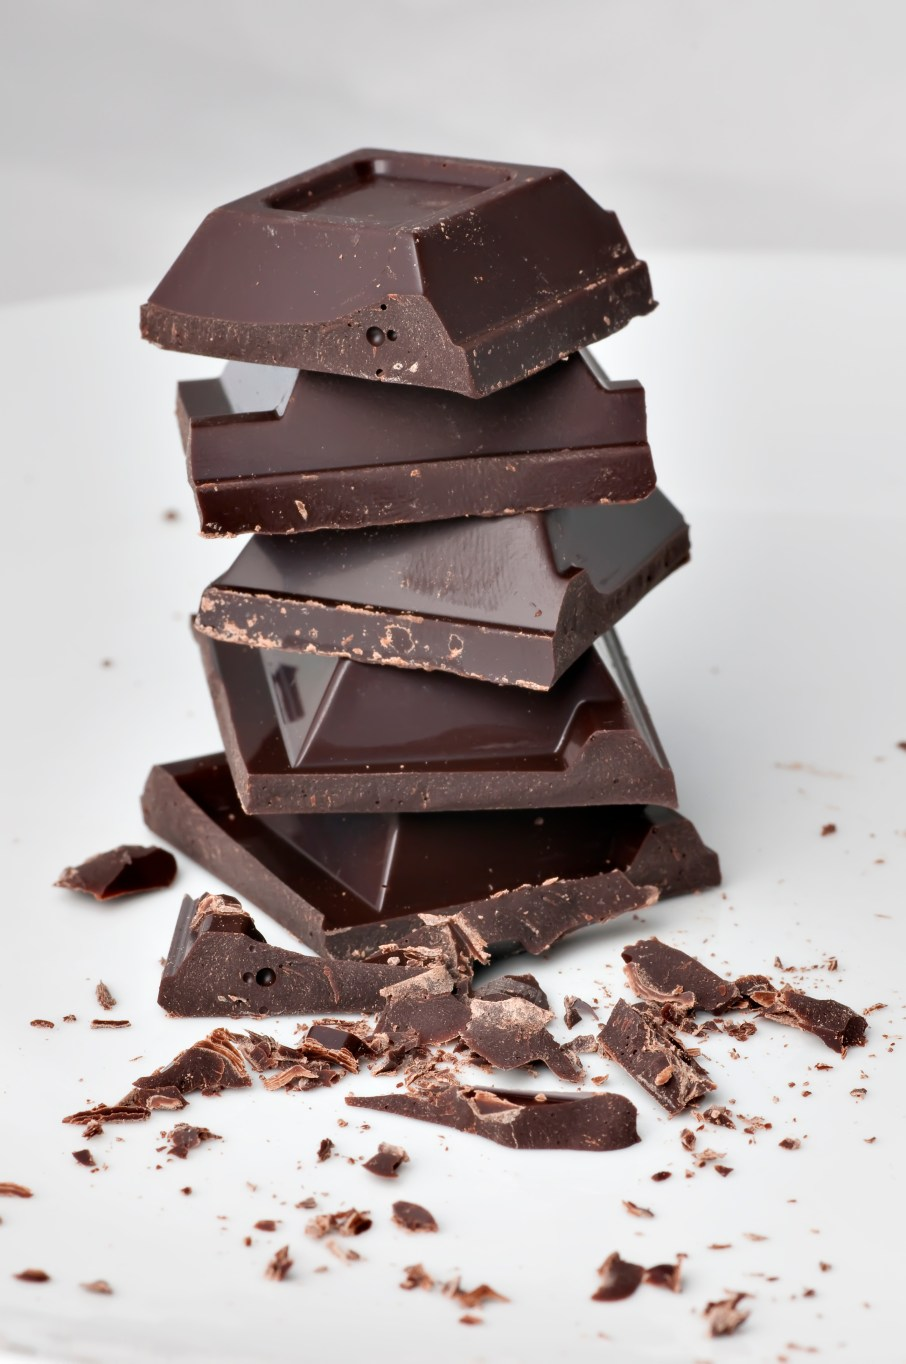 A pile of chocolate blocks on white background